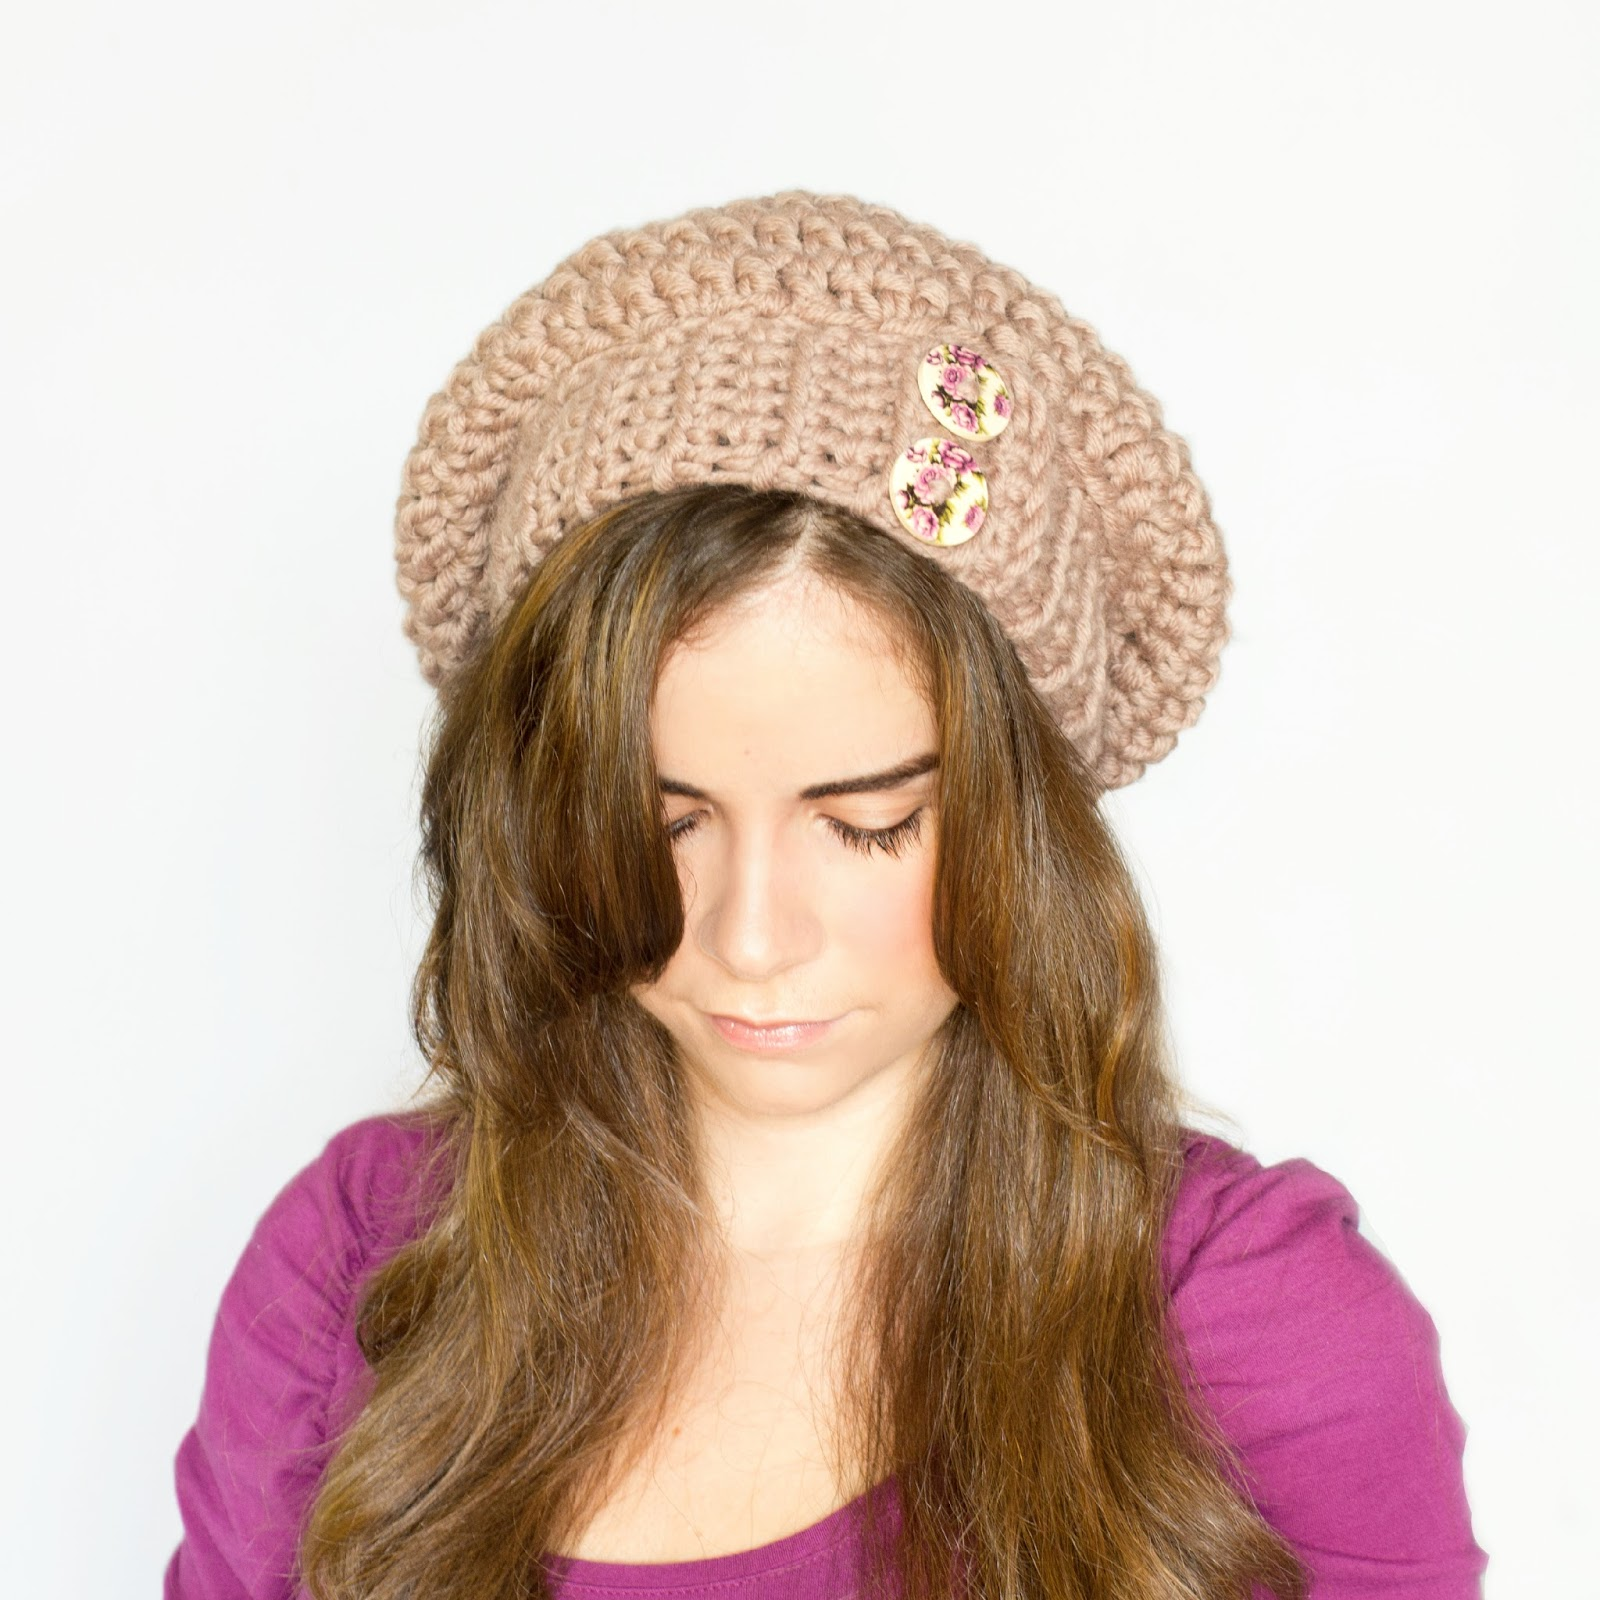 Crochet Pattern To Make A Beanie : Hopeful Honey Craft, Crochet, Create: Chunky Slouchy ...